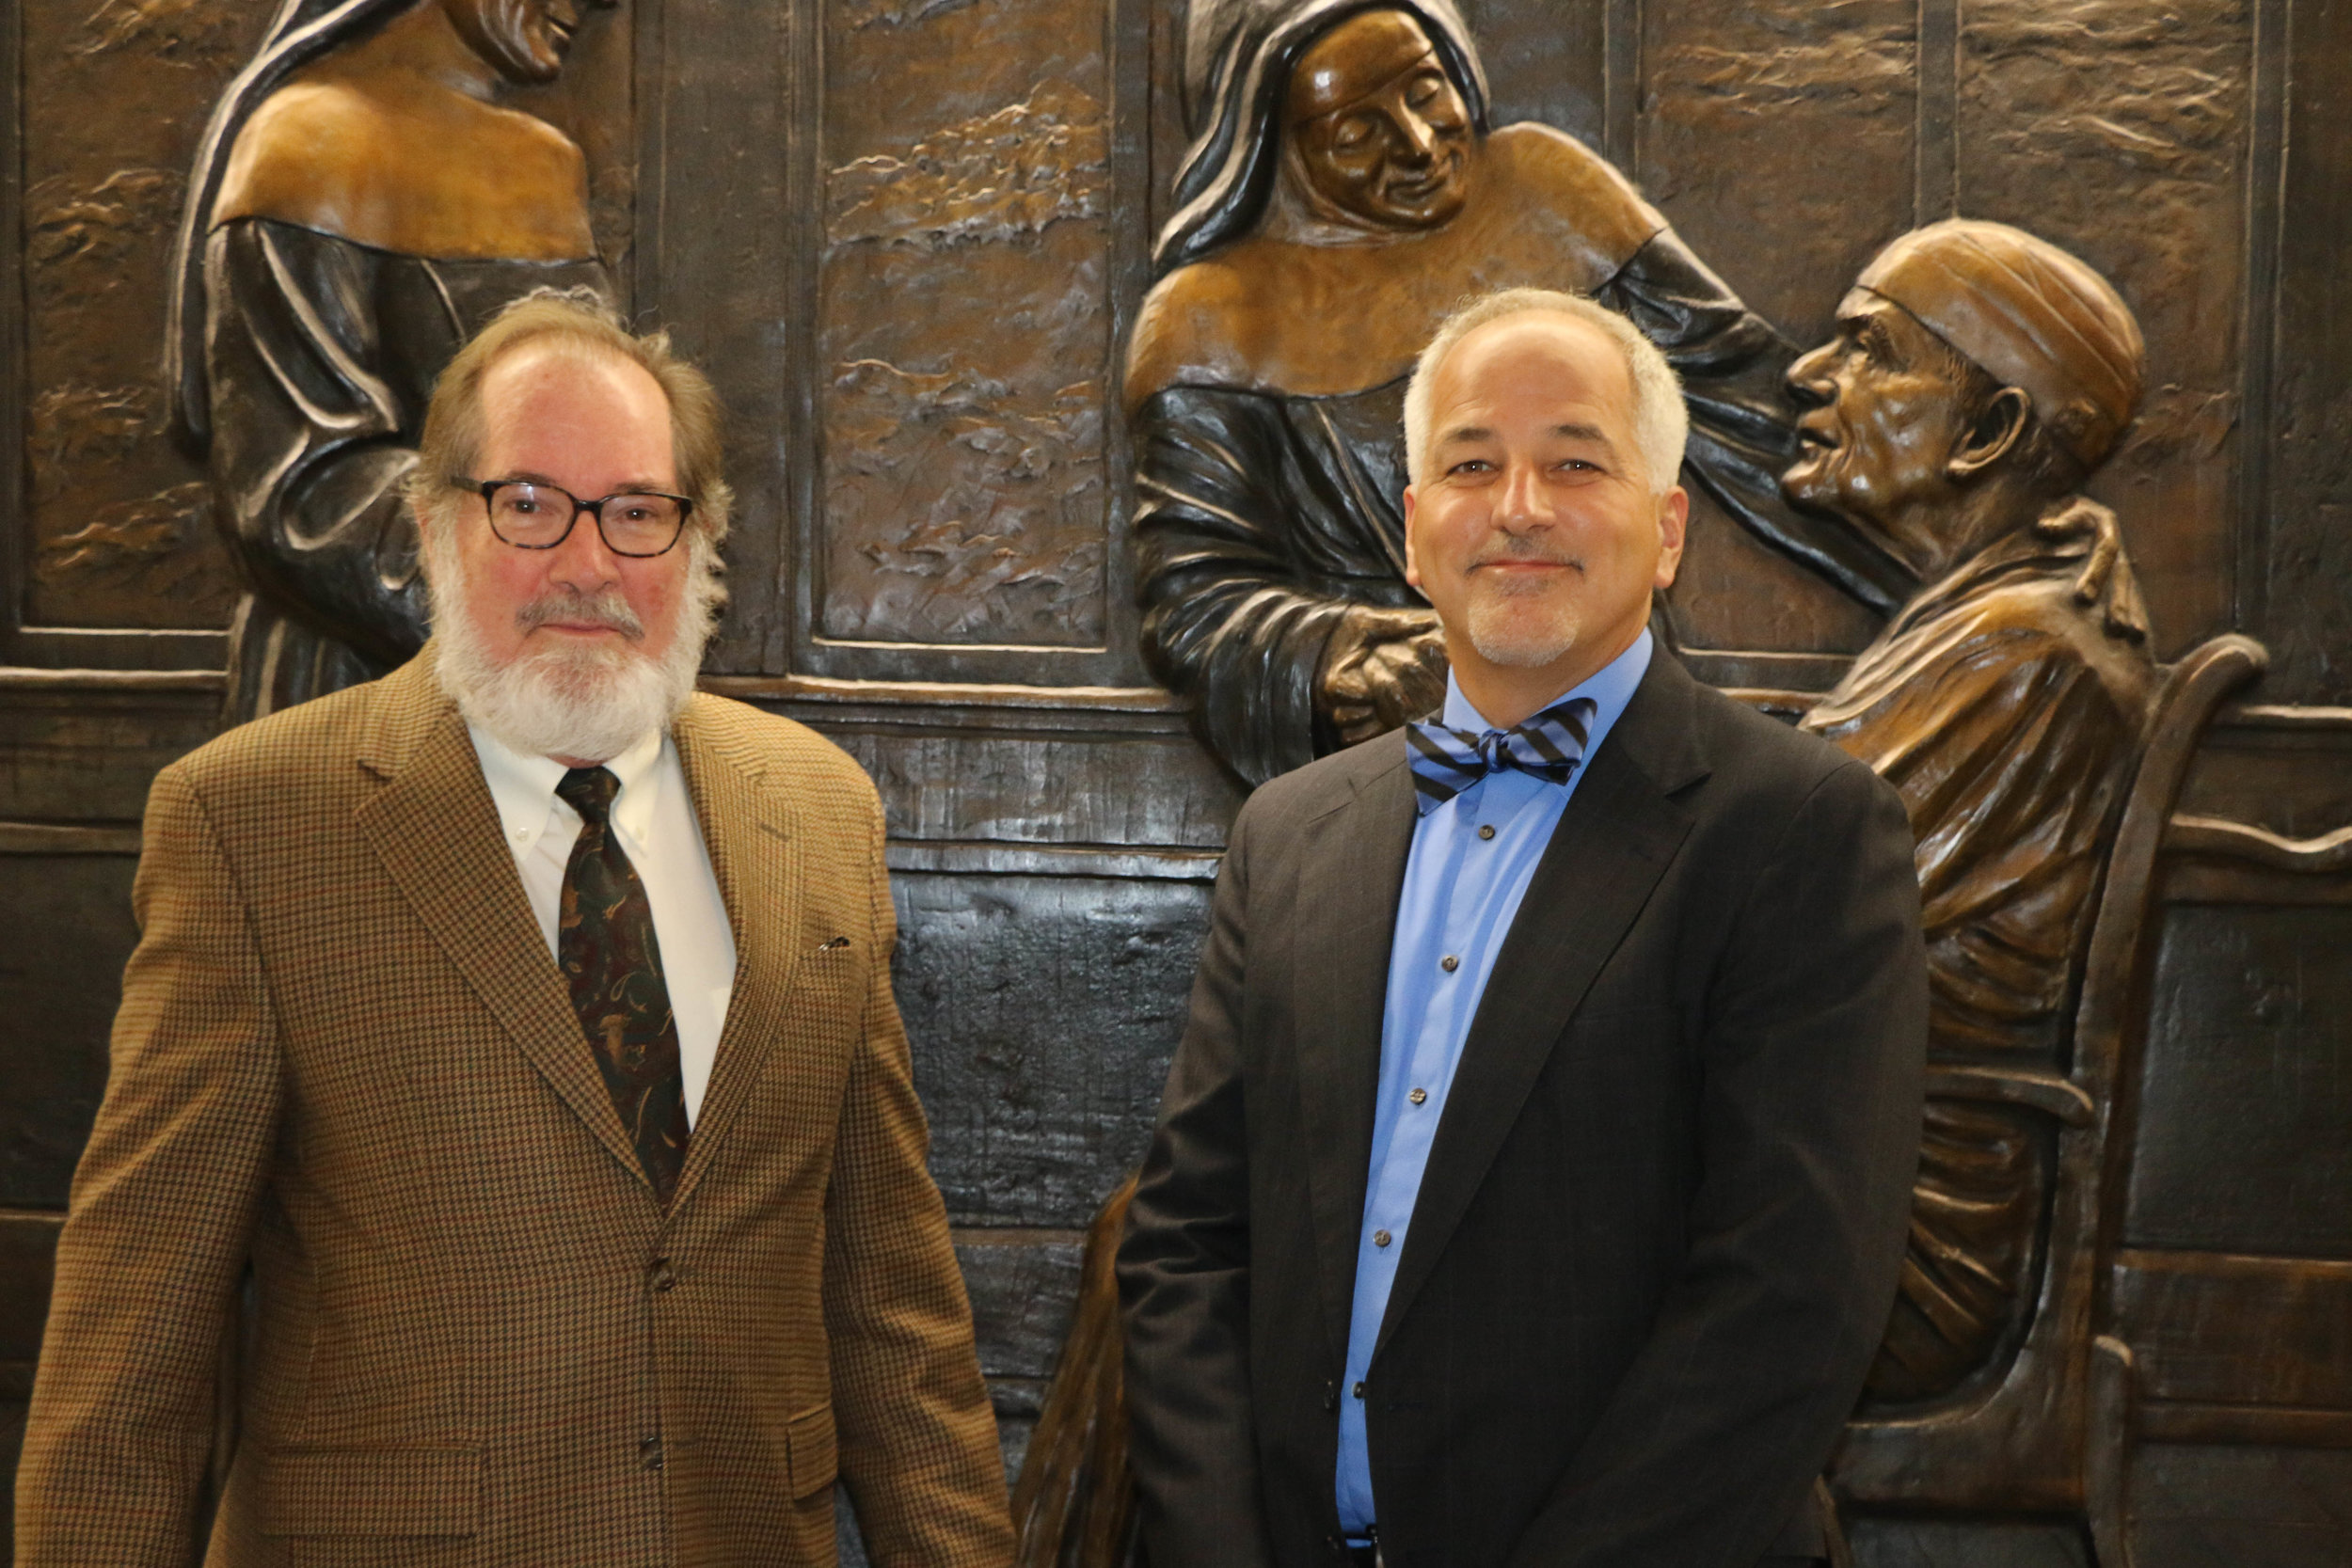 Dr. Tom Cutrer and Dr. Del Doughty